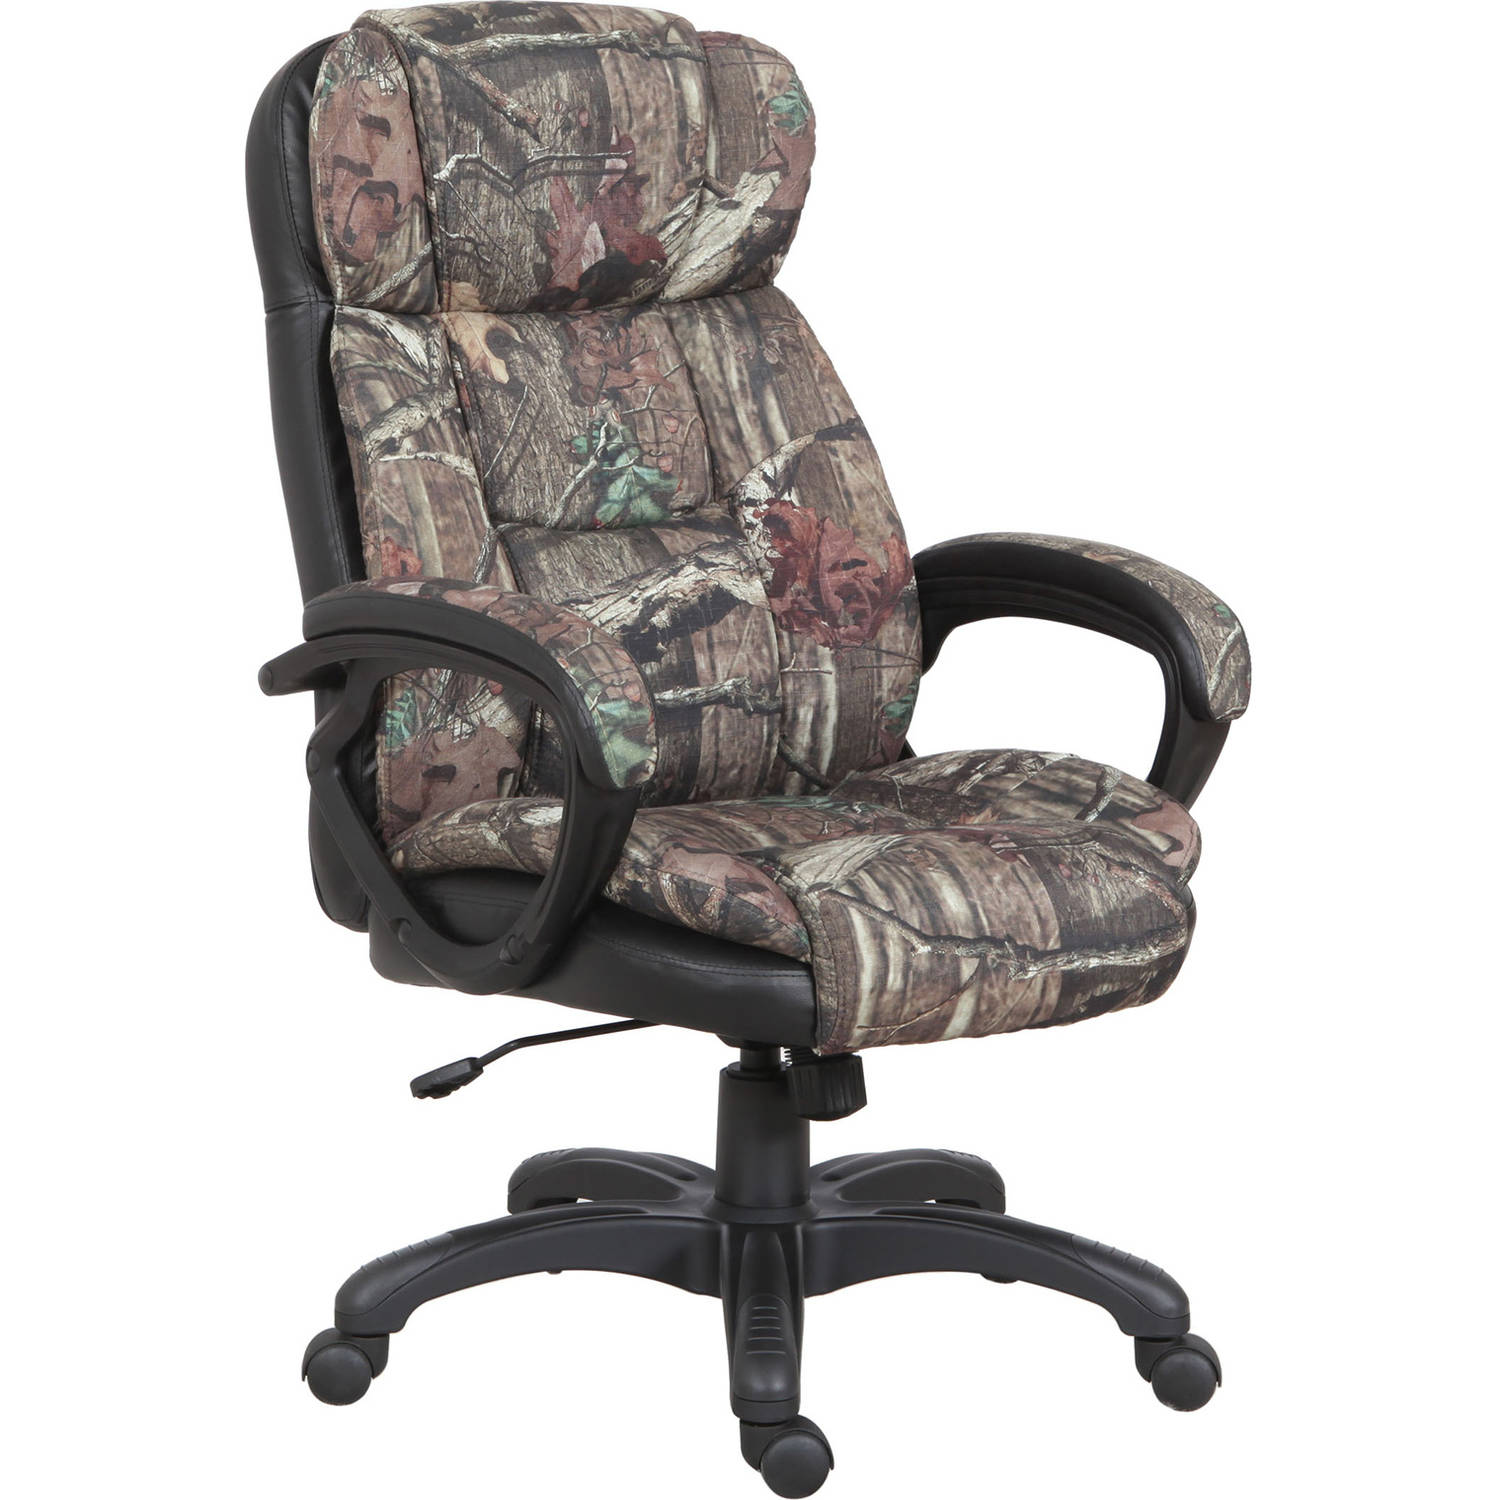 American Furniture Classics Executive Chair, Mossy Oak